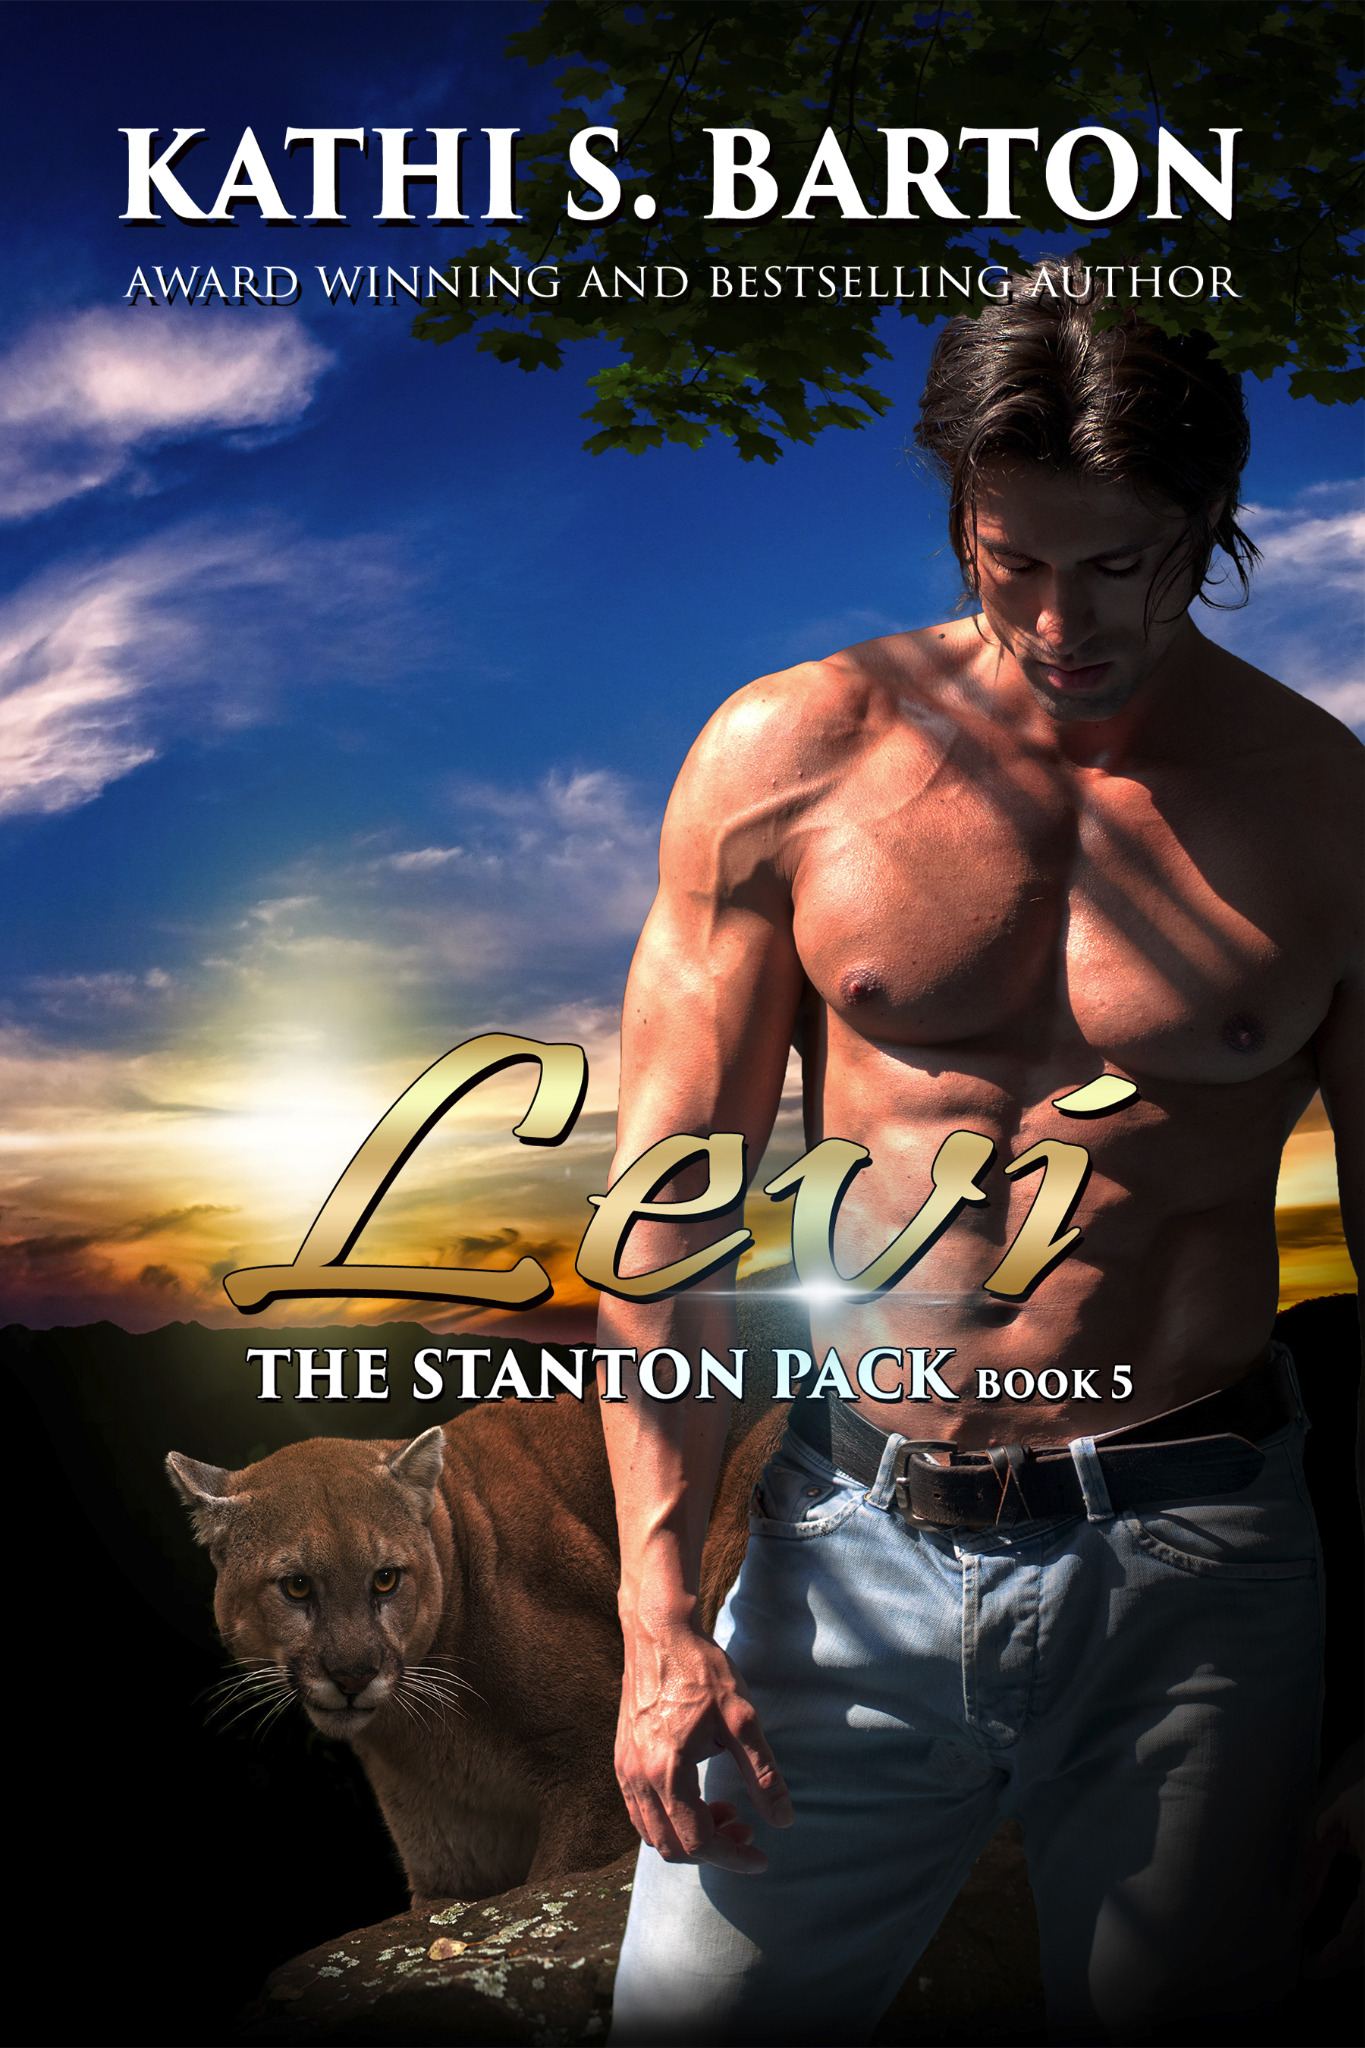 Levi - The Stanton Pack Book 5